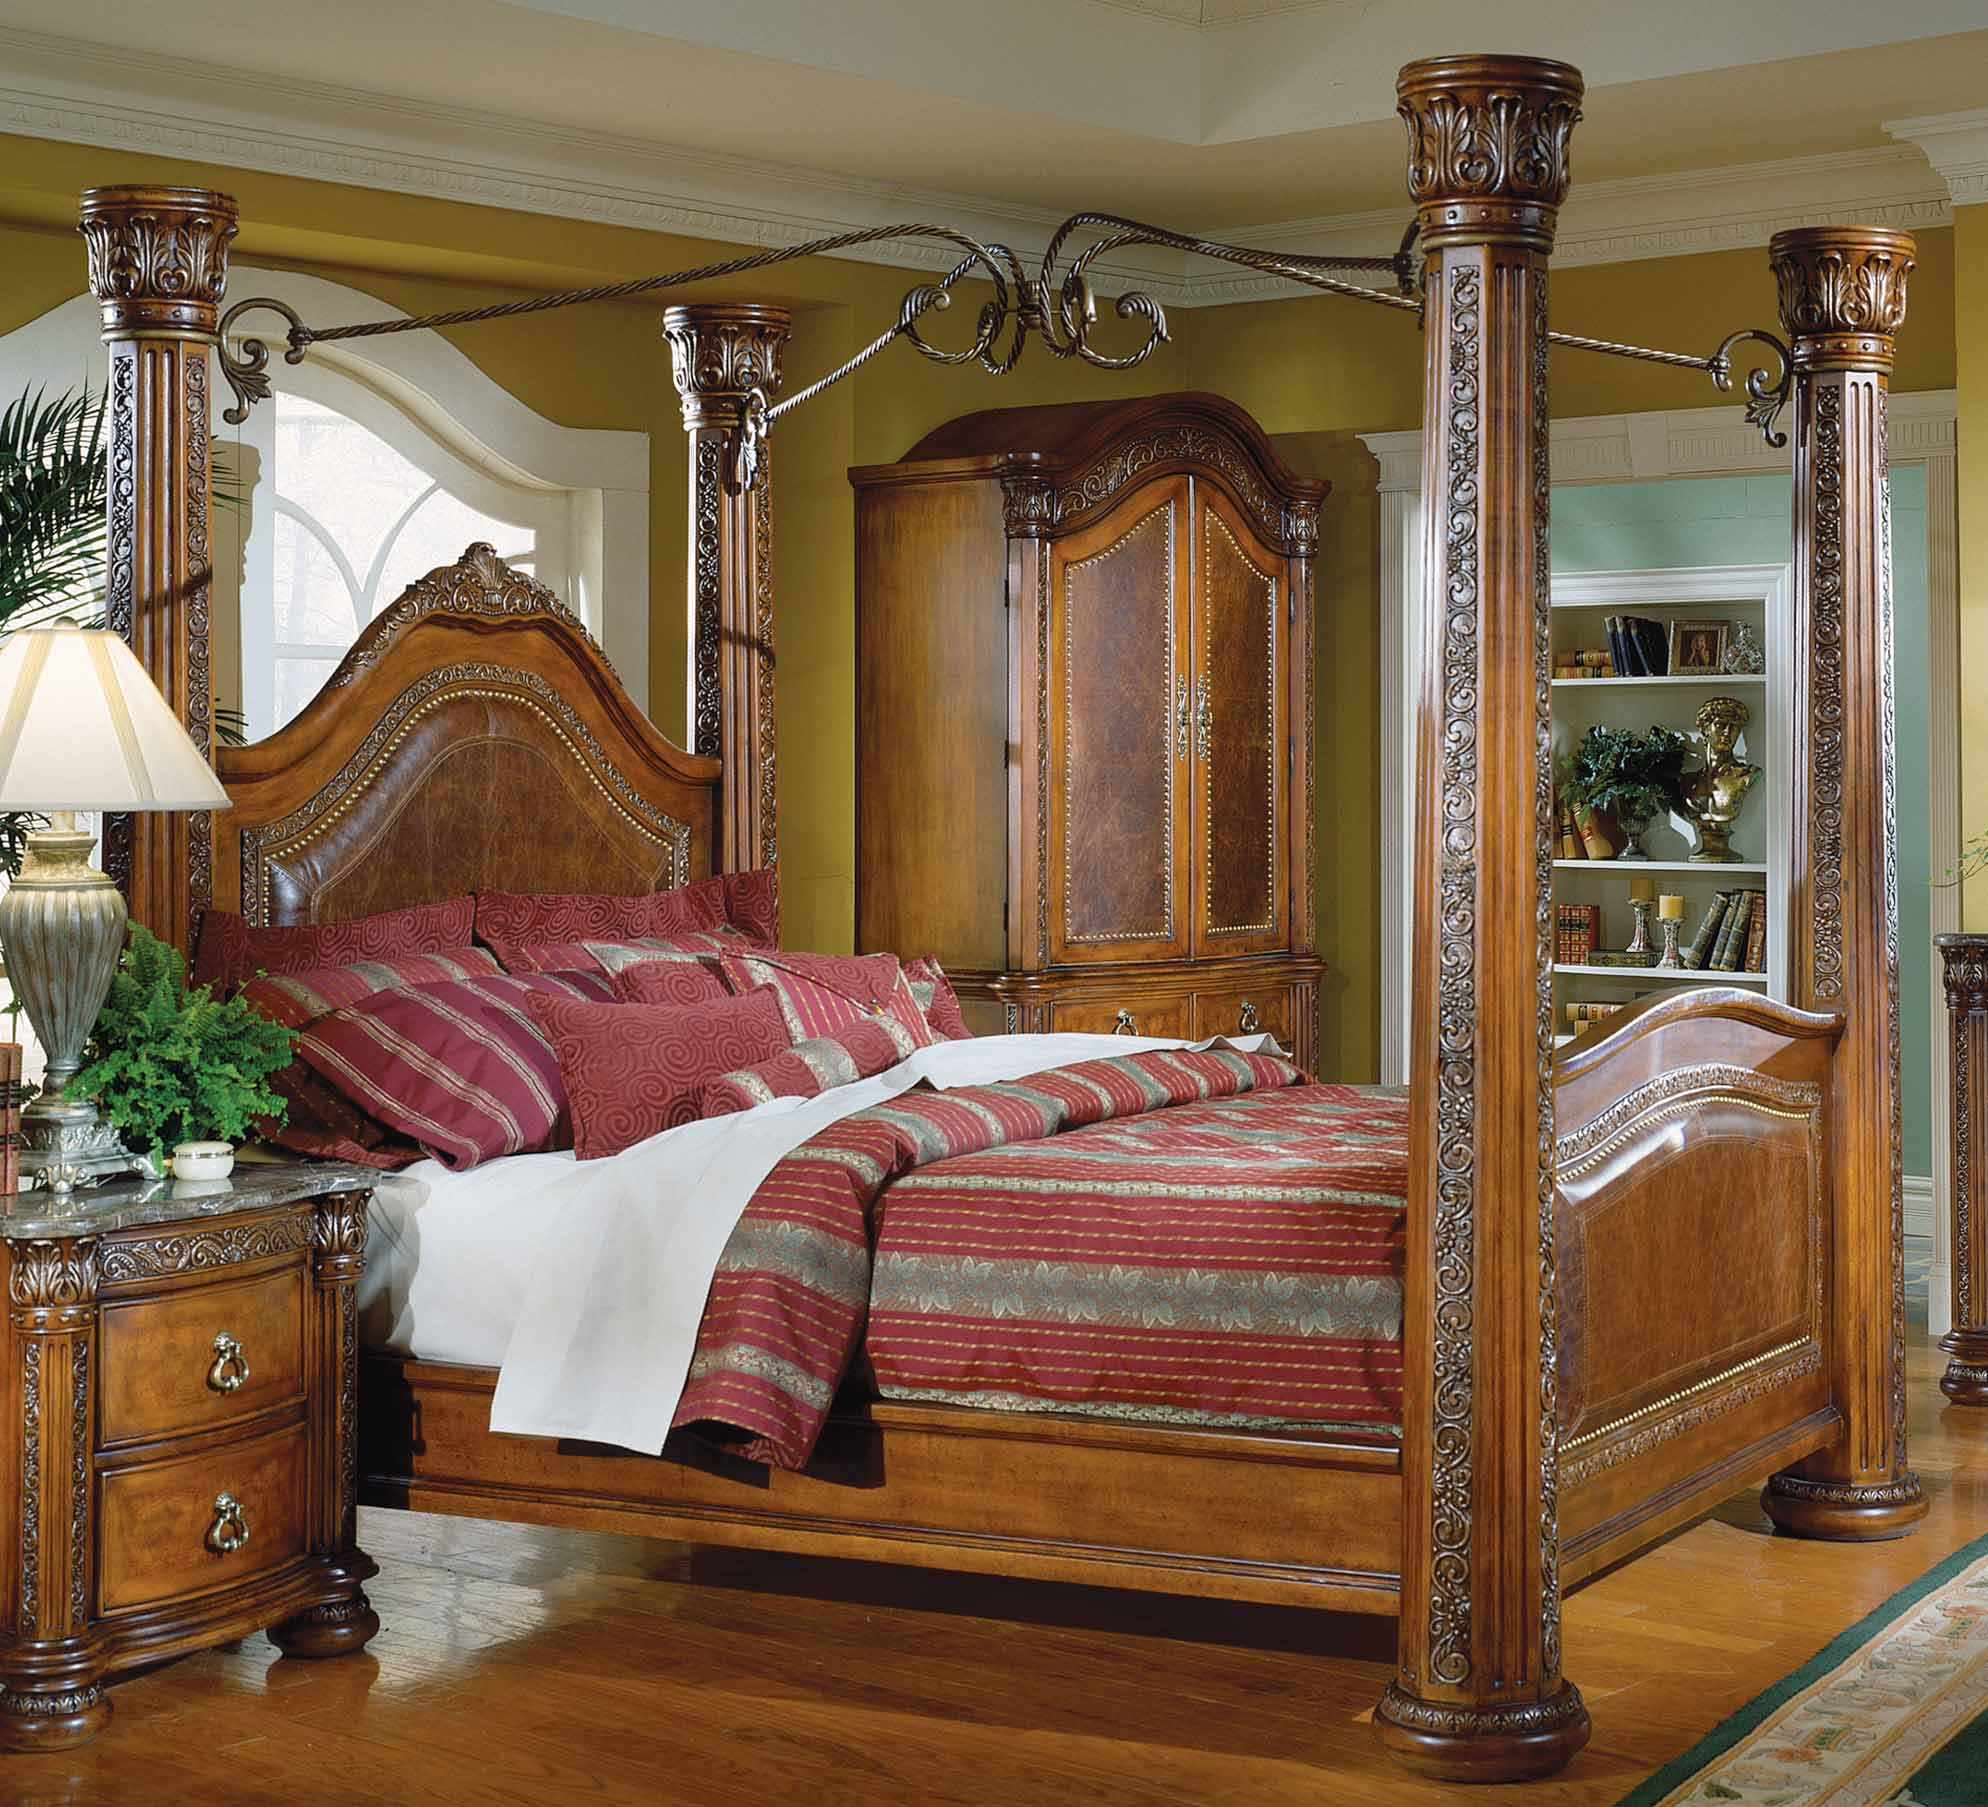 Homelegance Spanish Hills Canopy Bed with Leather